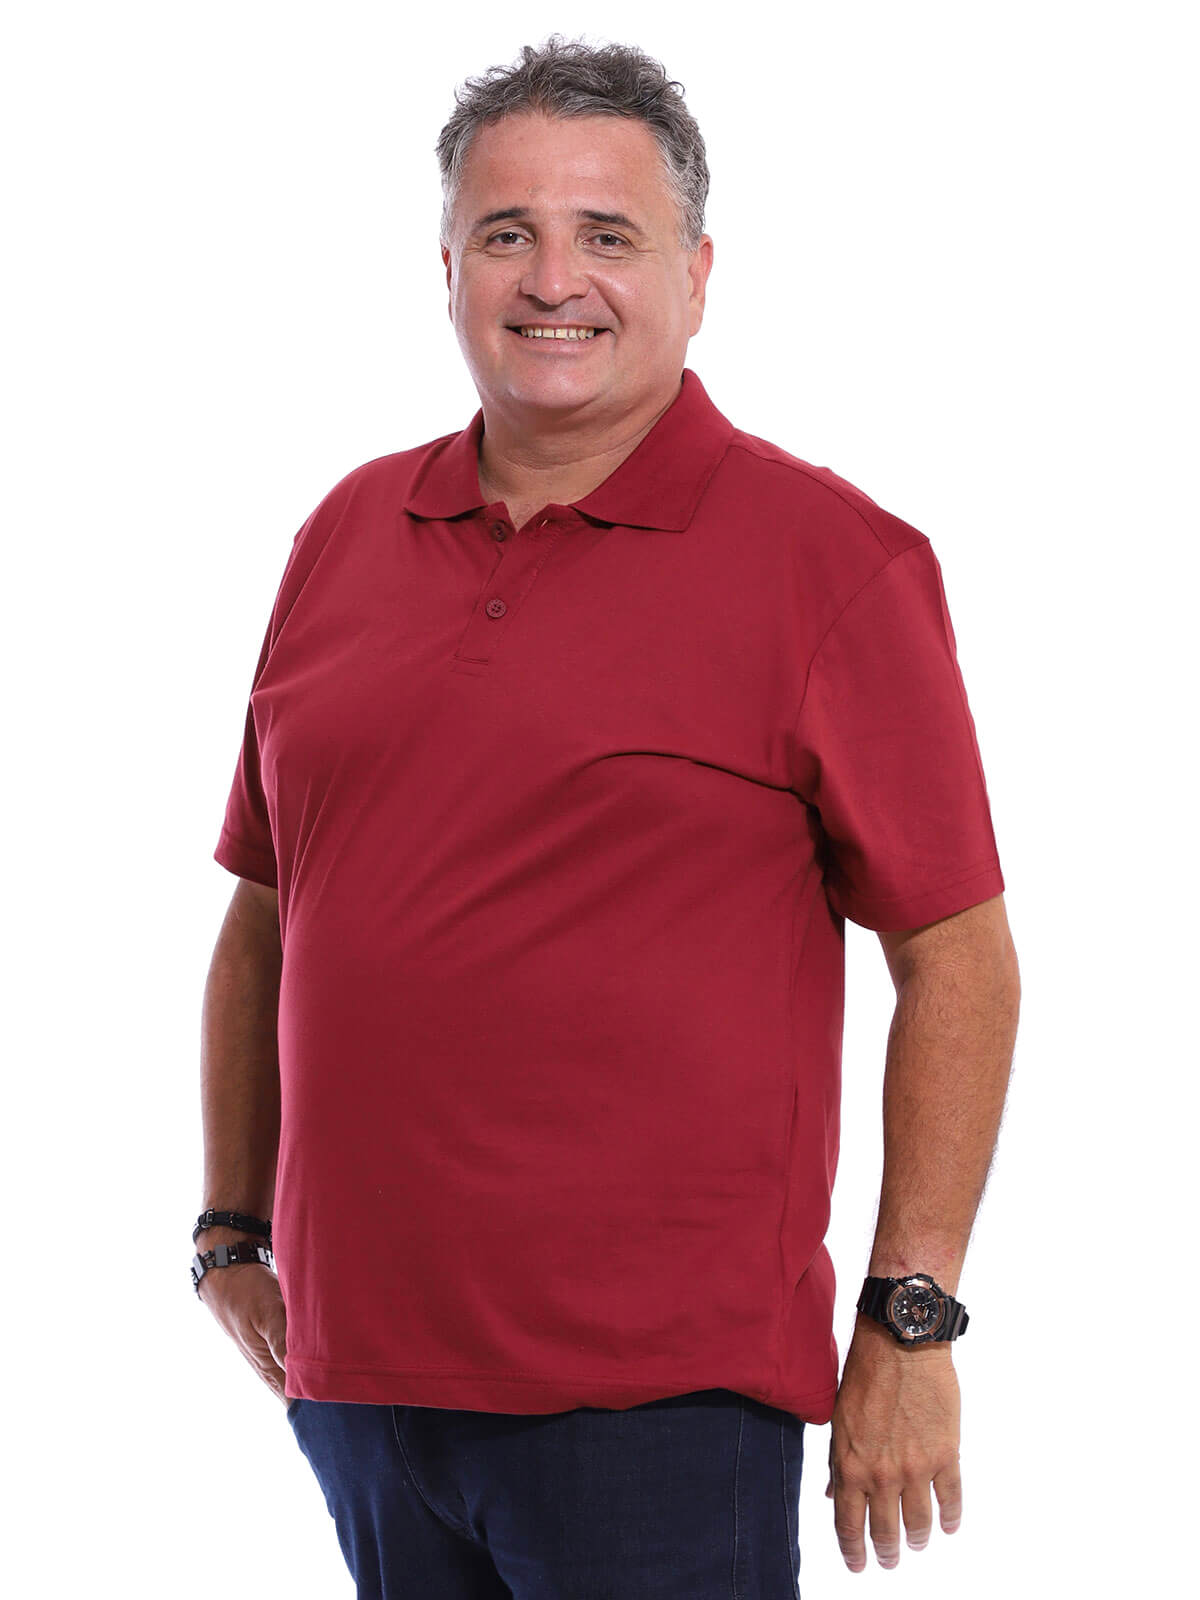 Camisa Polo Plus Size Básica Bordo